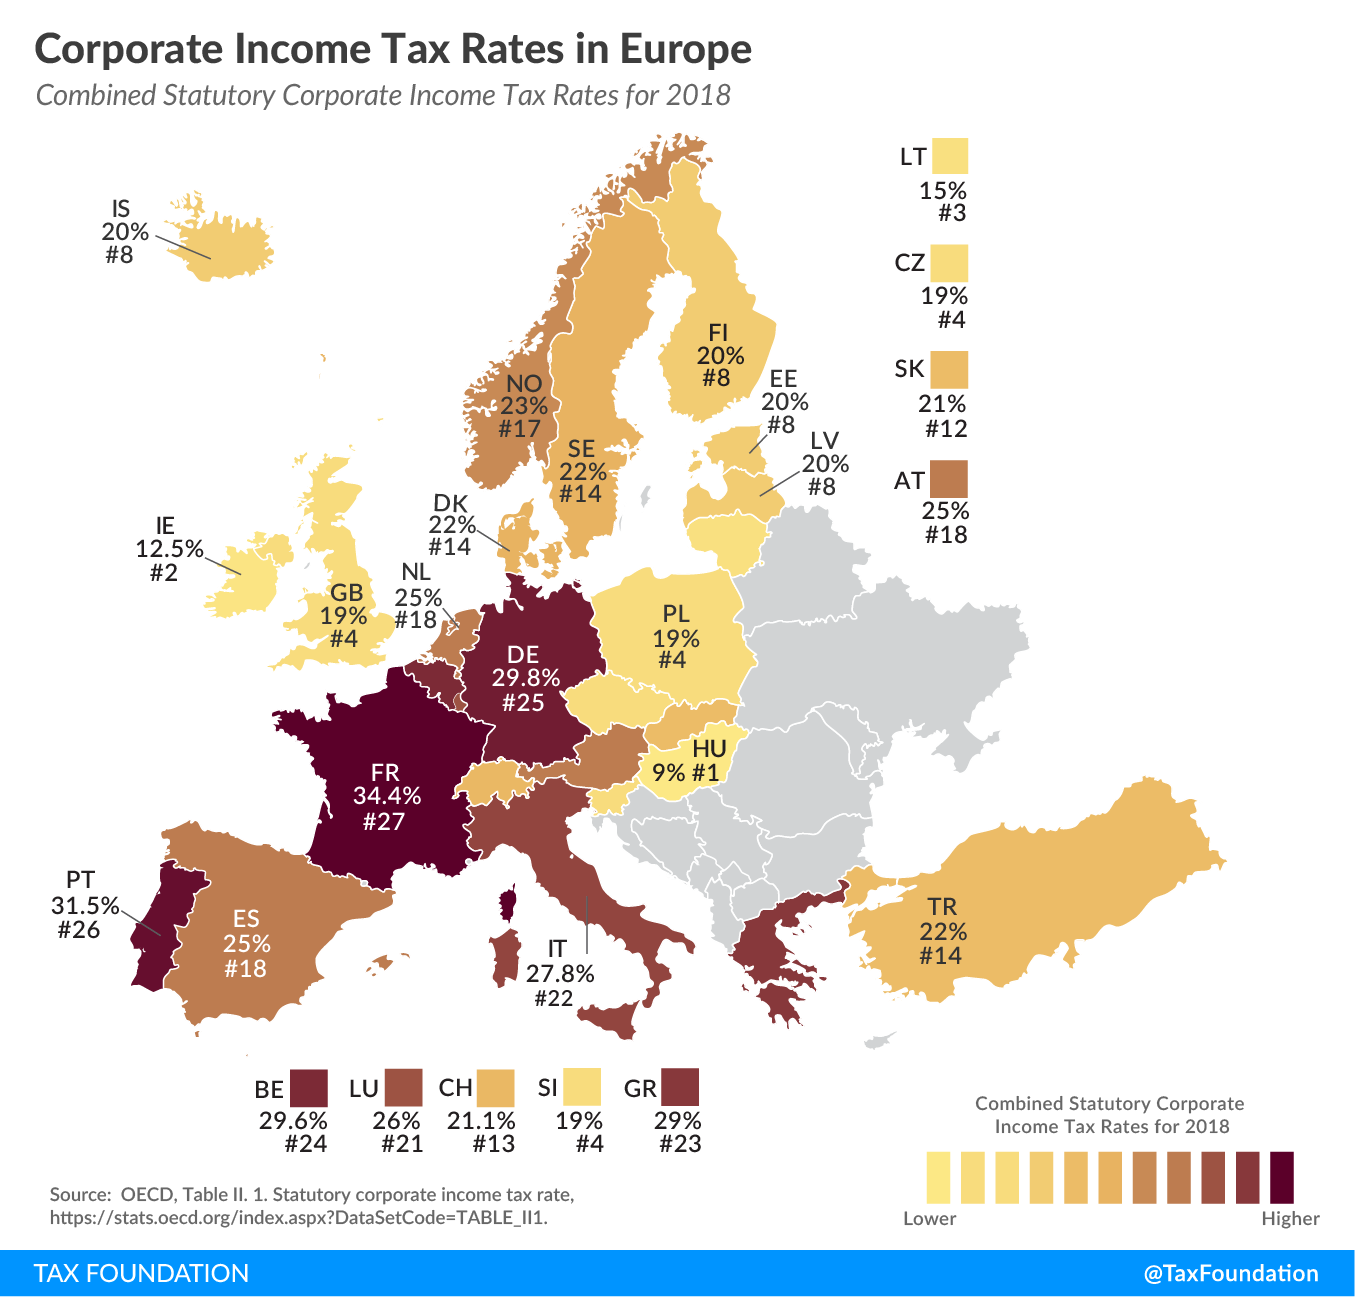 Corporate Income Tax Rates Europe, European Corporate Tax Rates, combined statutory corporate income tax rates Europe 2018